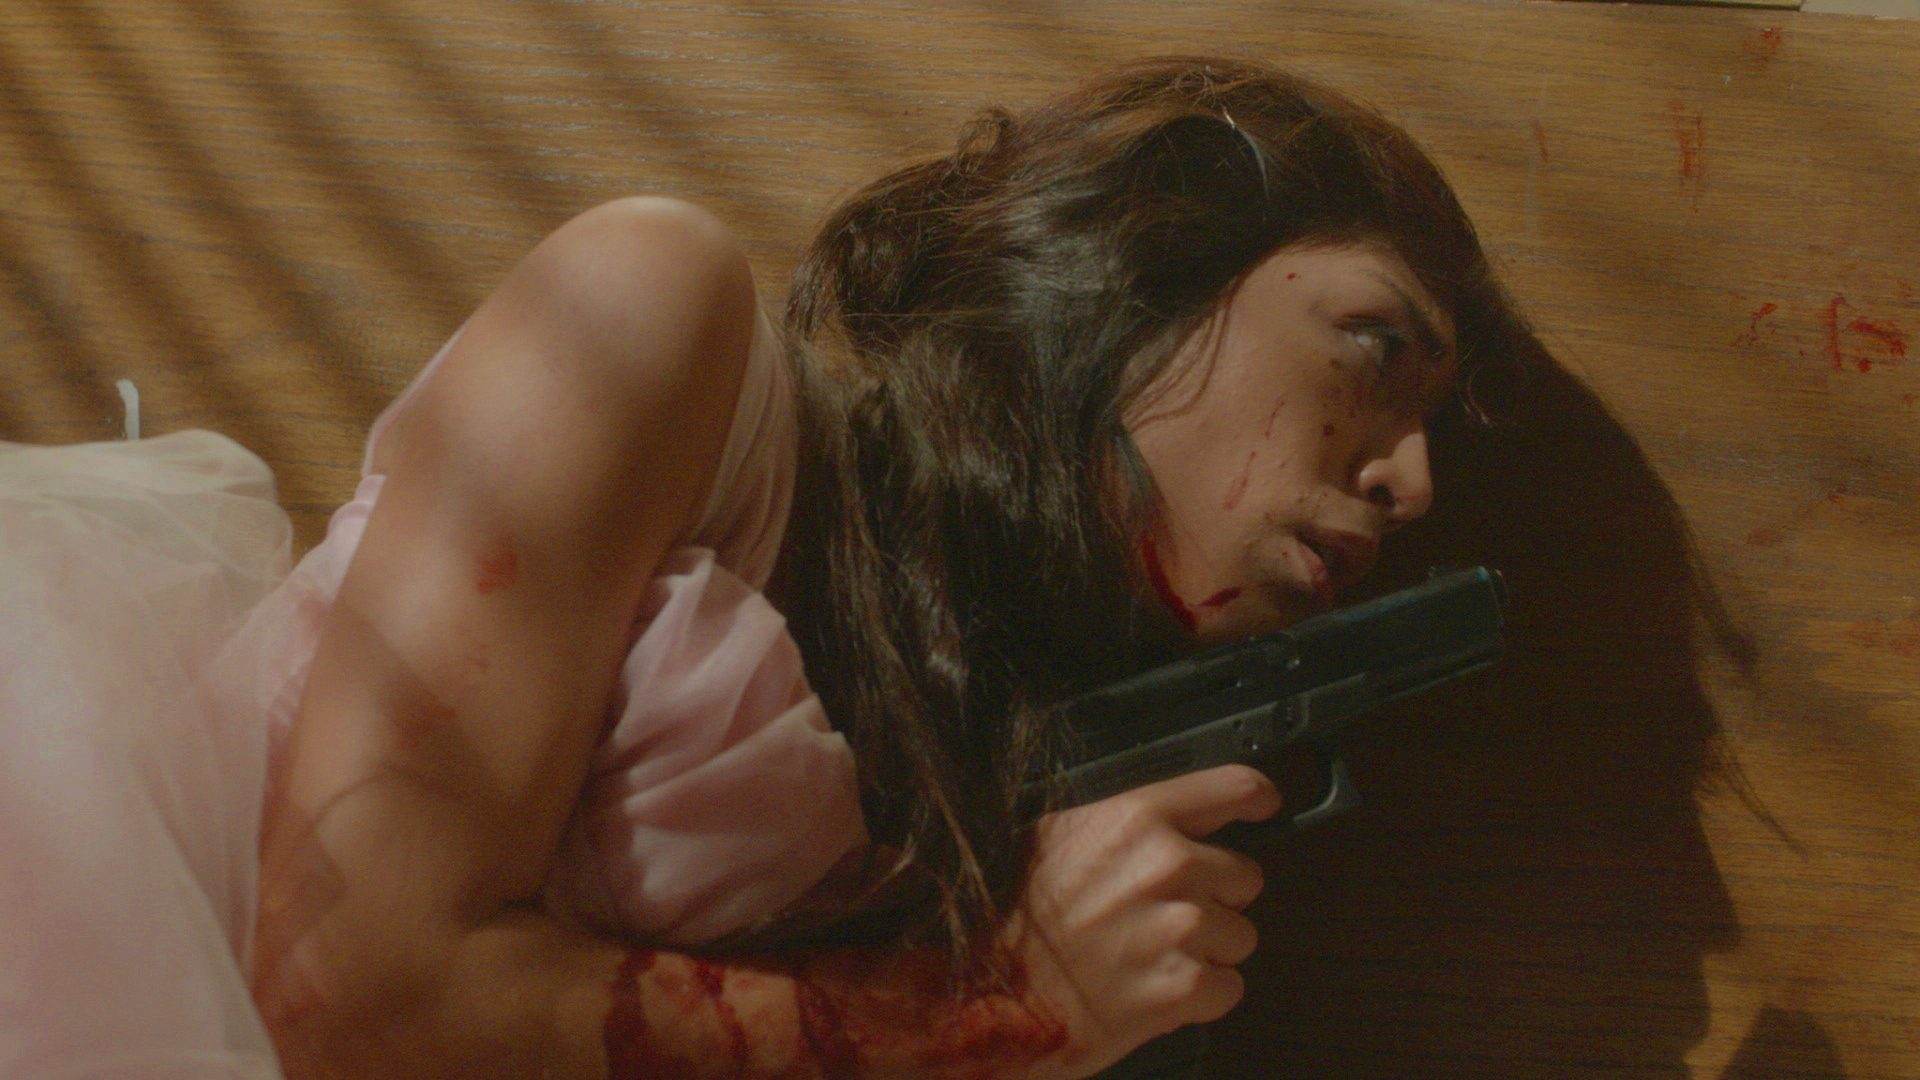 'La Quinceañera' Is a Tex-Mex Horror Web Series About a Party That Goes Very Wrong